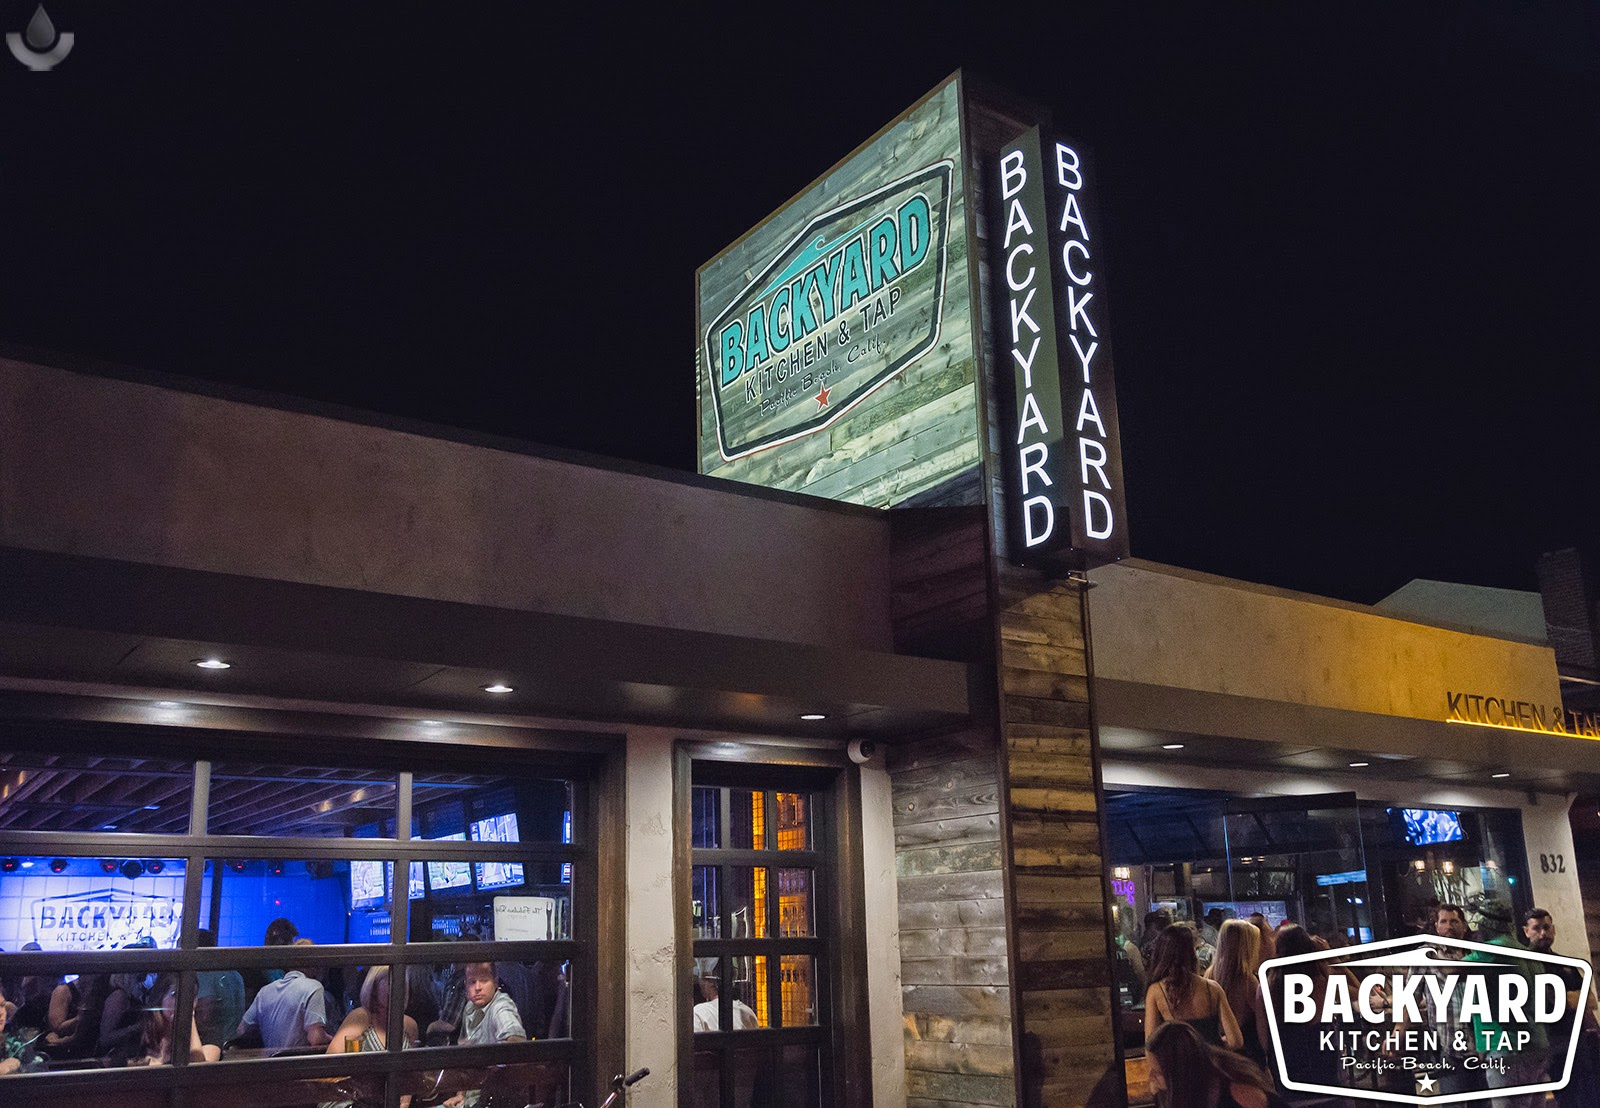 Charmant Come Play At Backyard Kitchen U0026 Tap | Pacific Beachu0027s New Grub And Brew  Hotspot